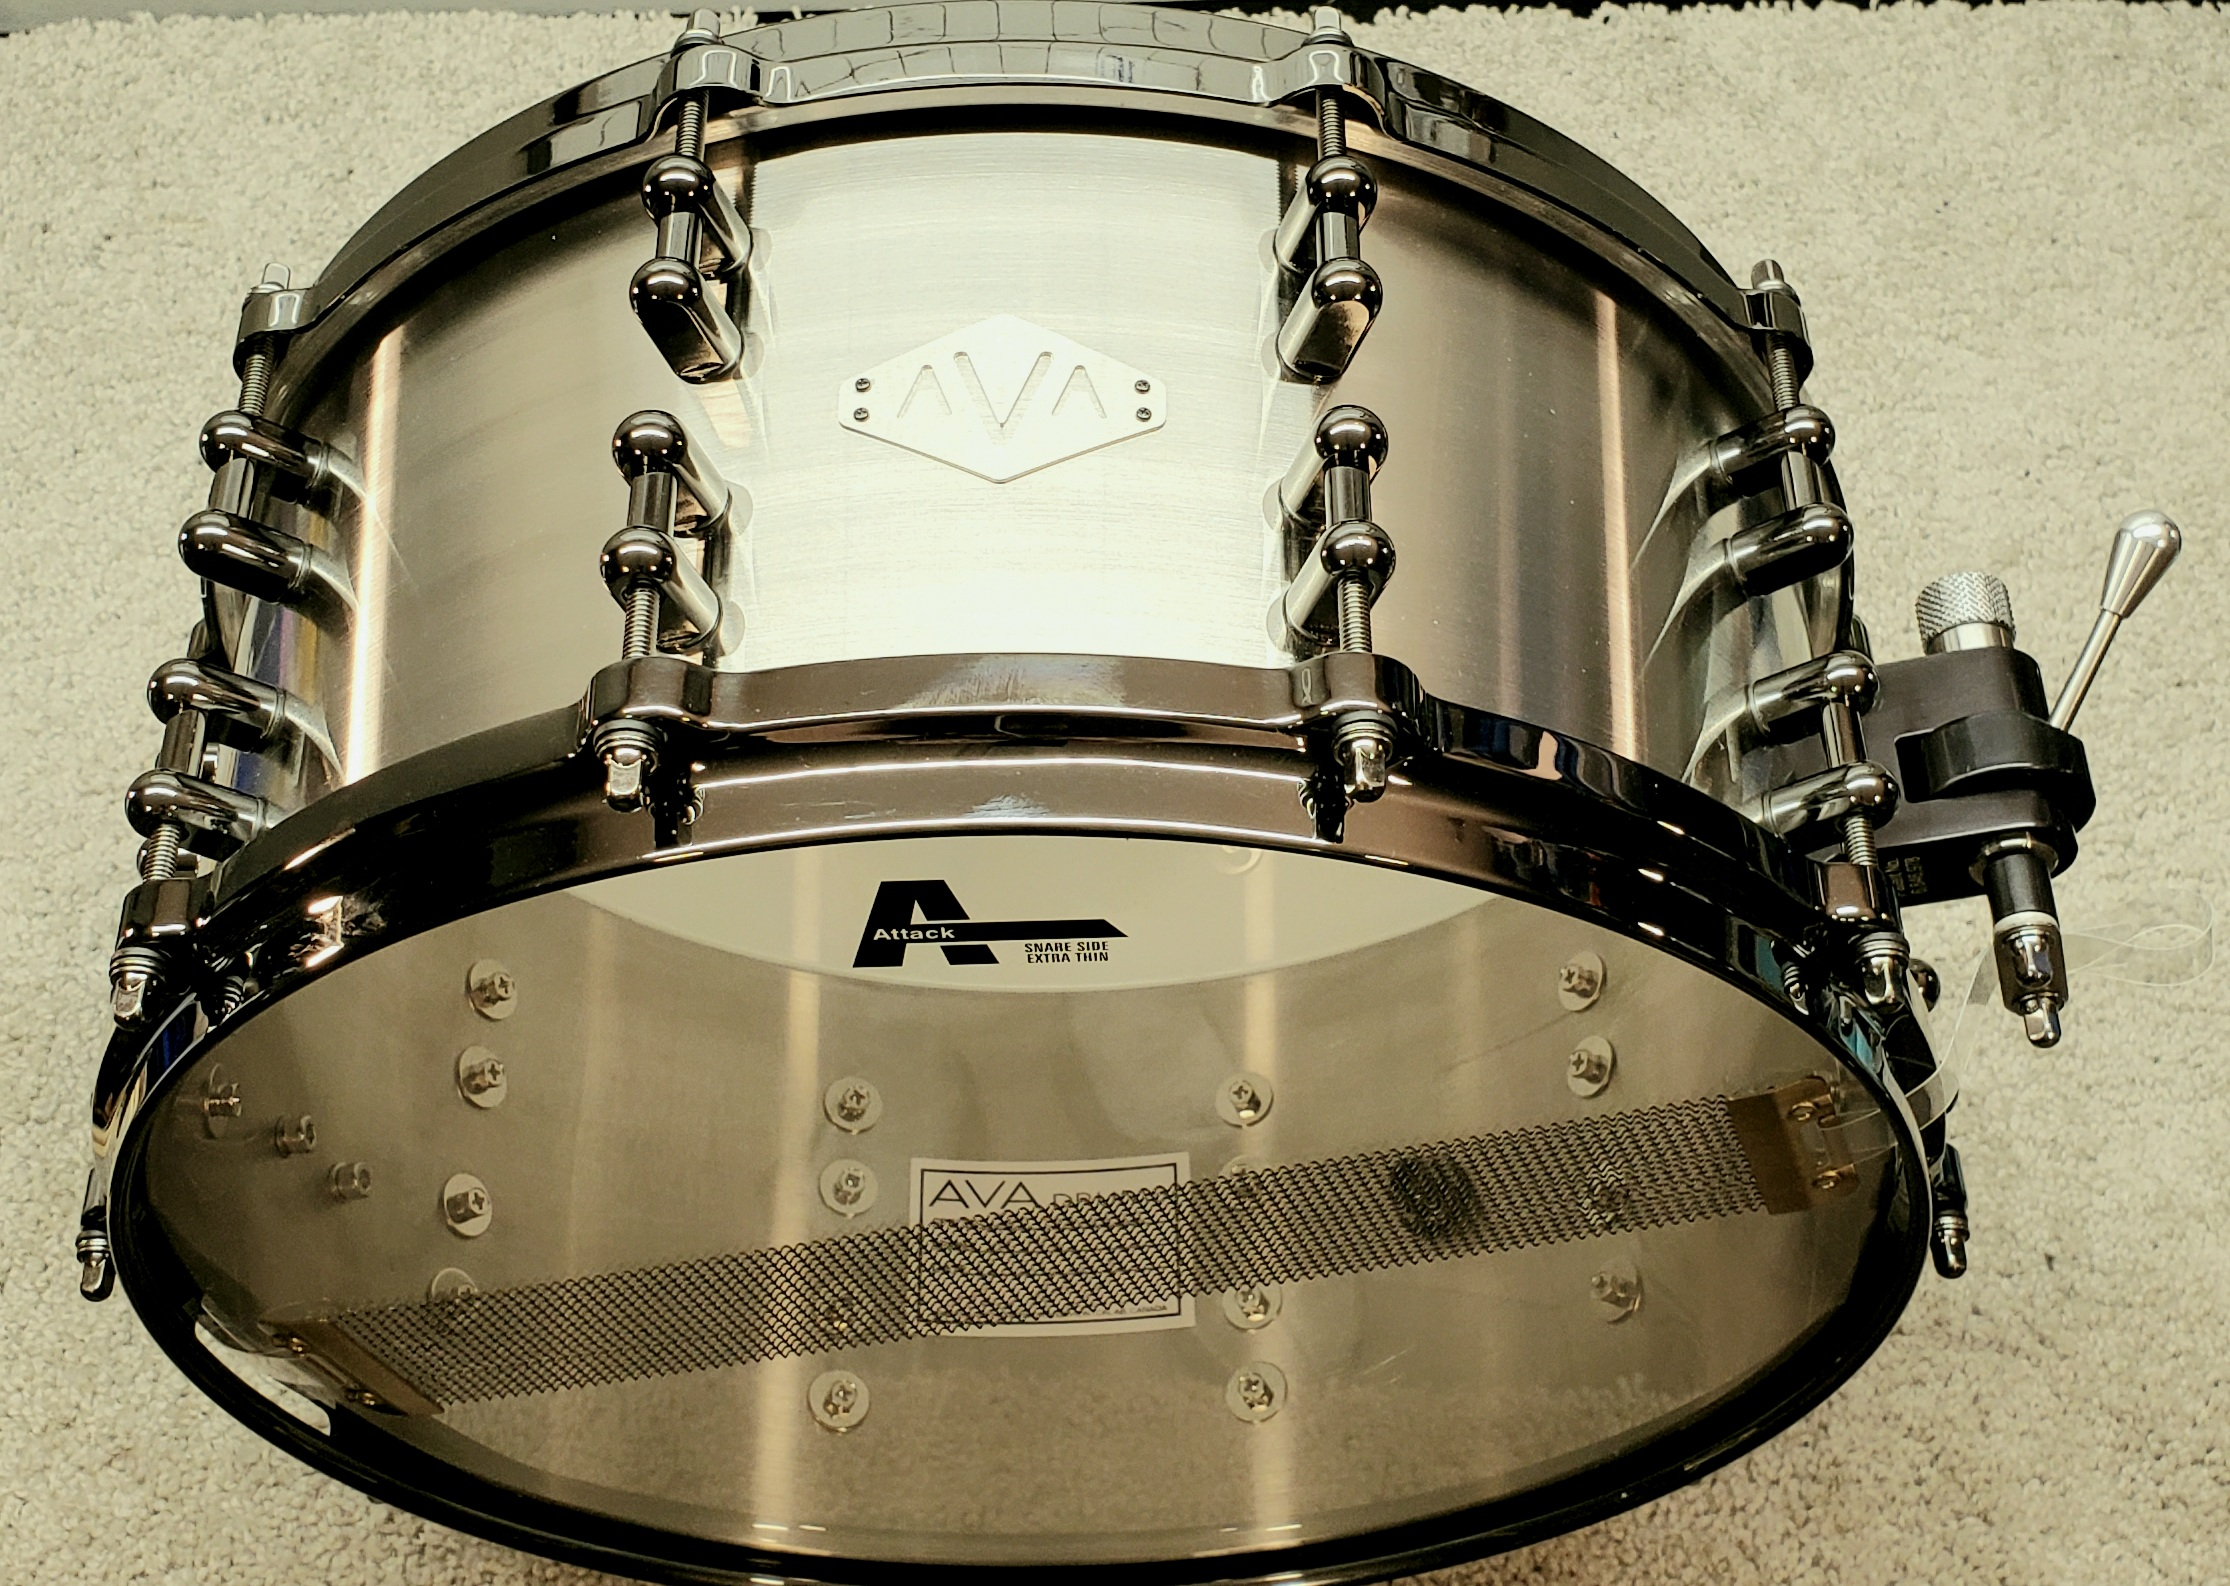 14 X 6.5 CAST STAINLESS STEEL